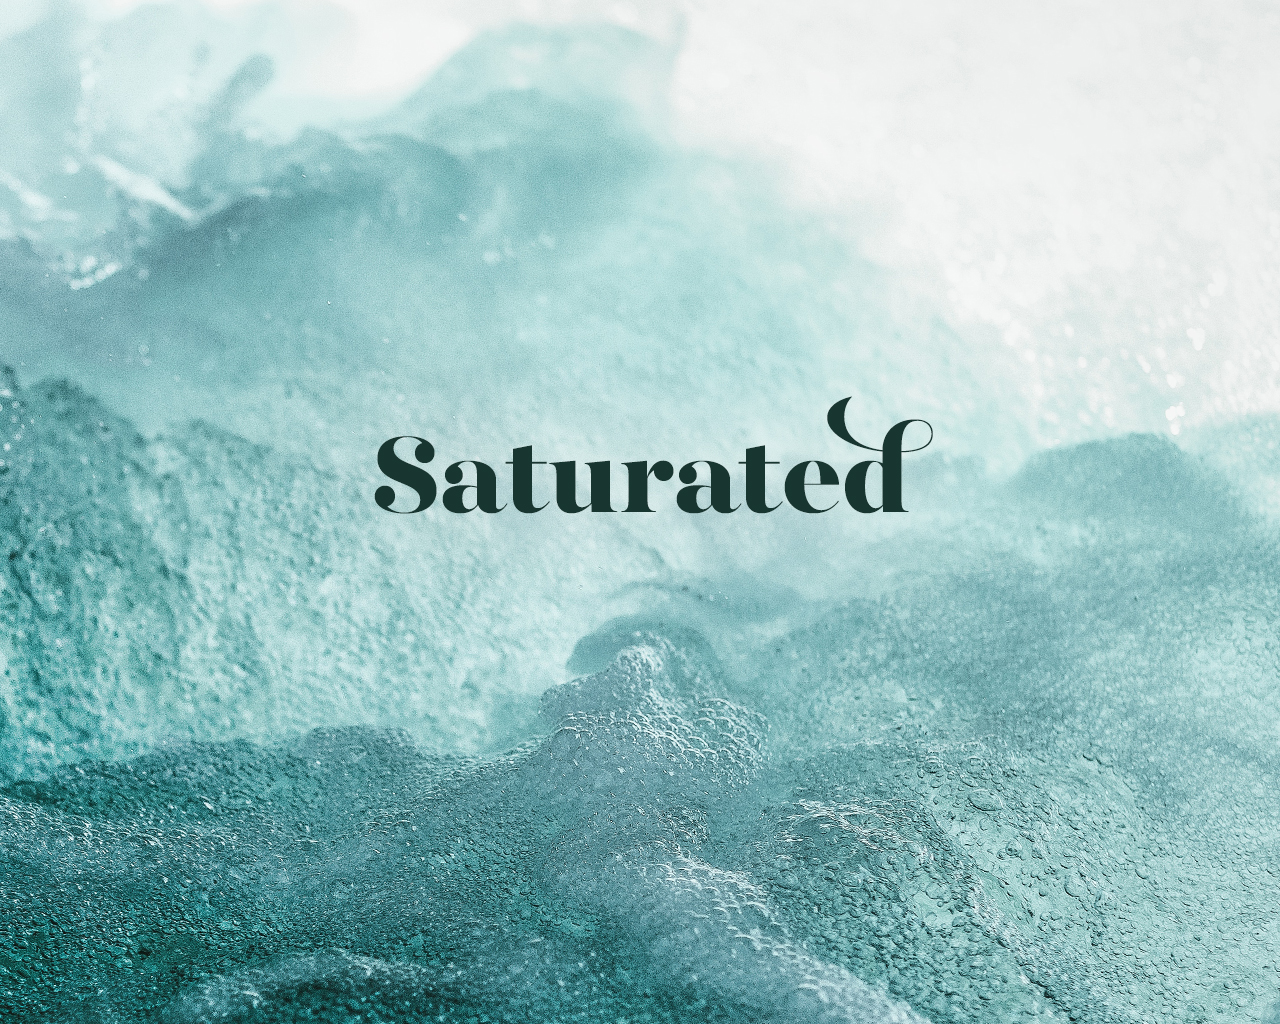 Saturated.jpg